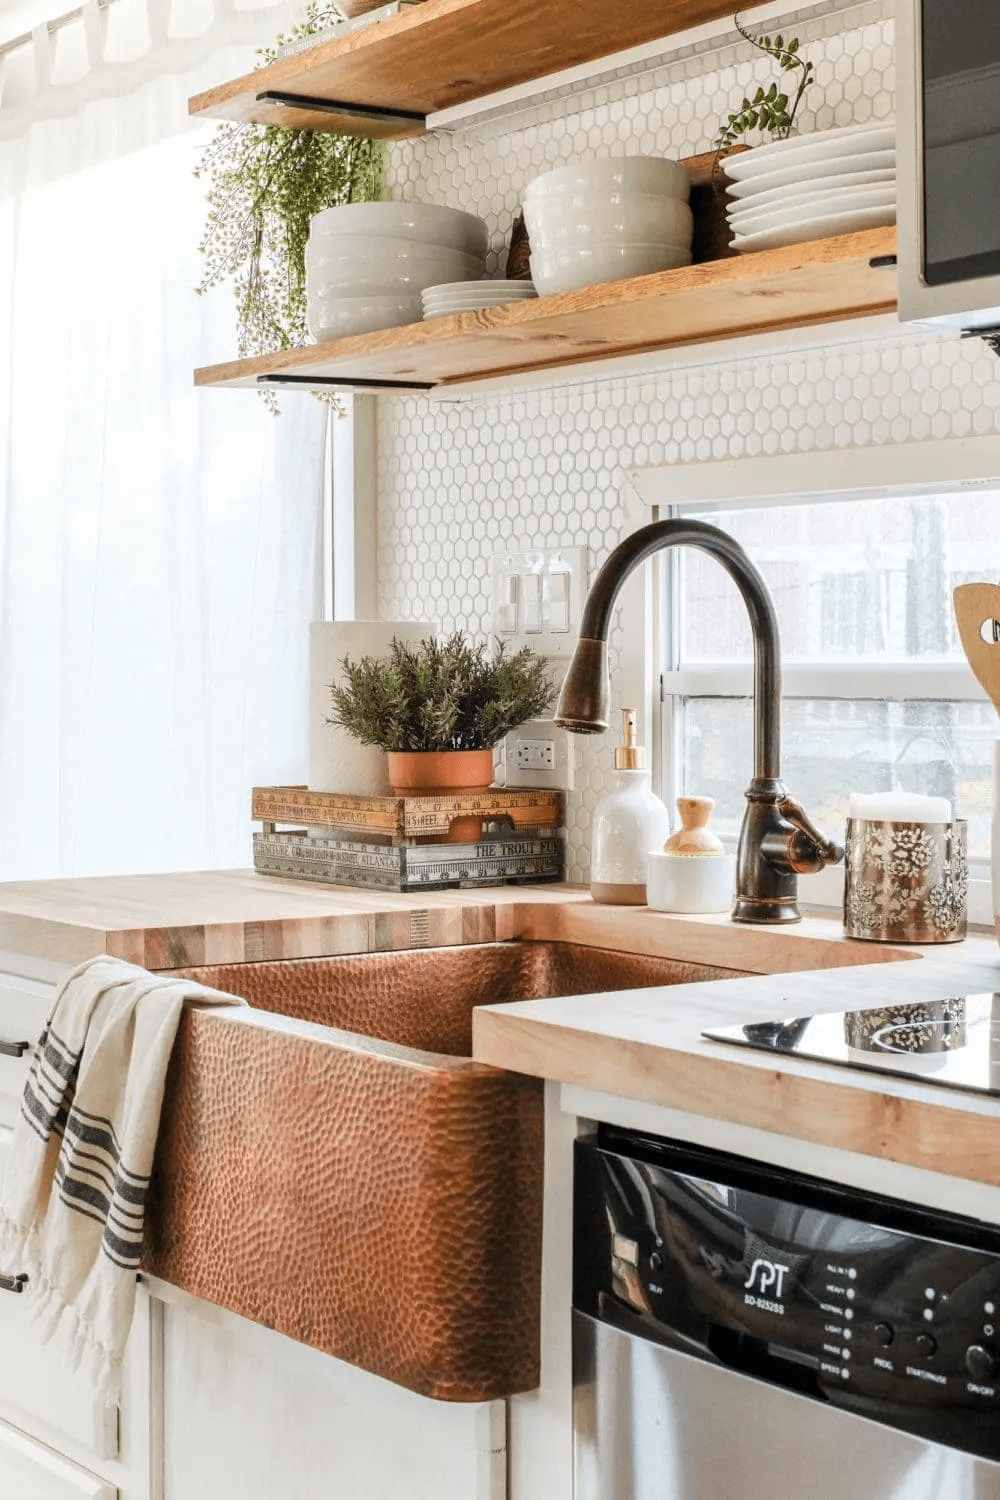 2. Another RV Kitchen Remodel you should try via Simphome.com